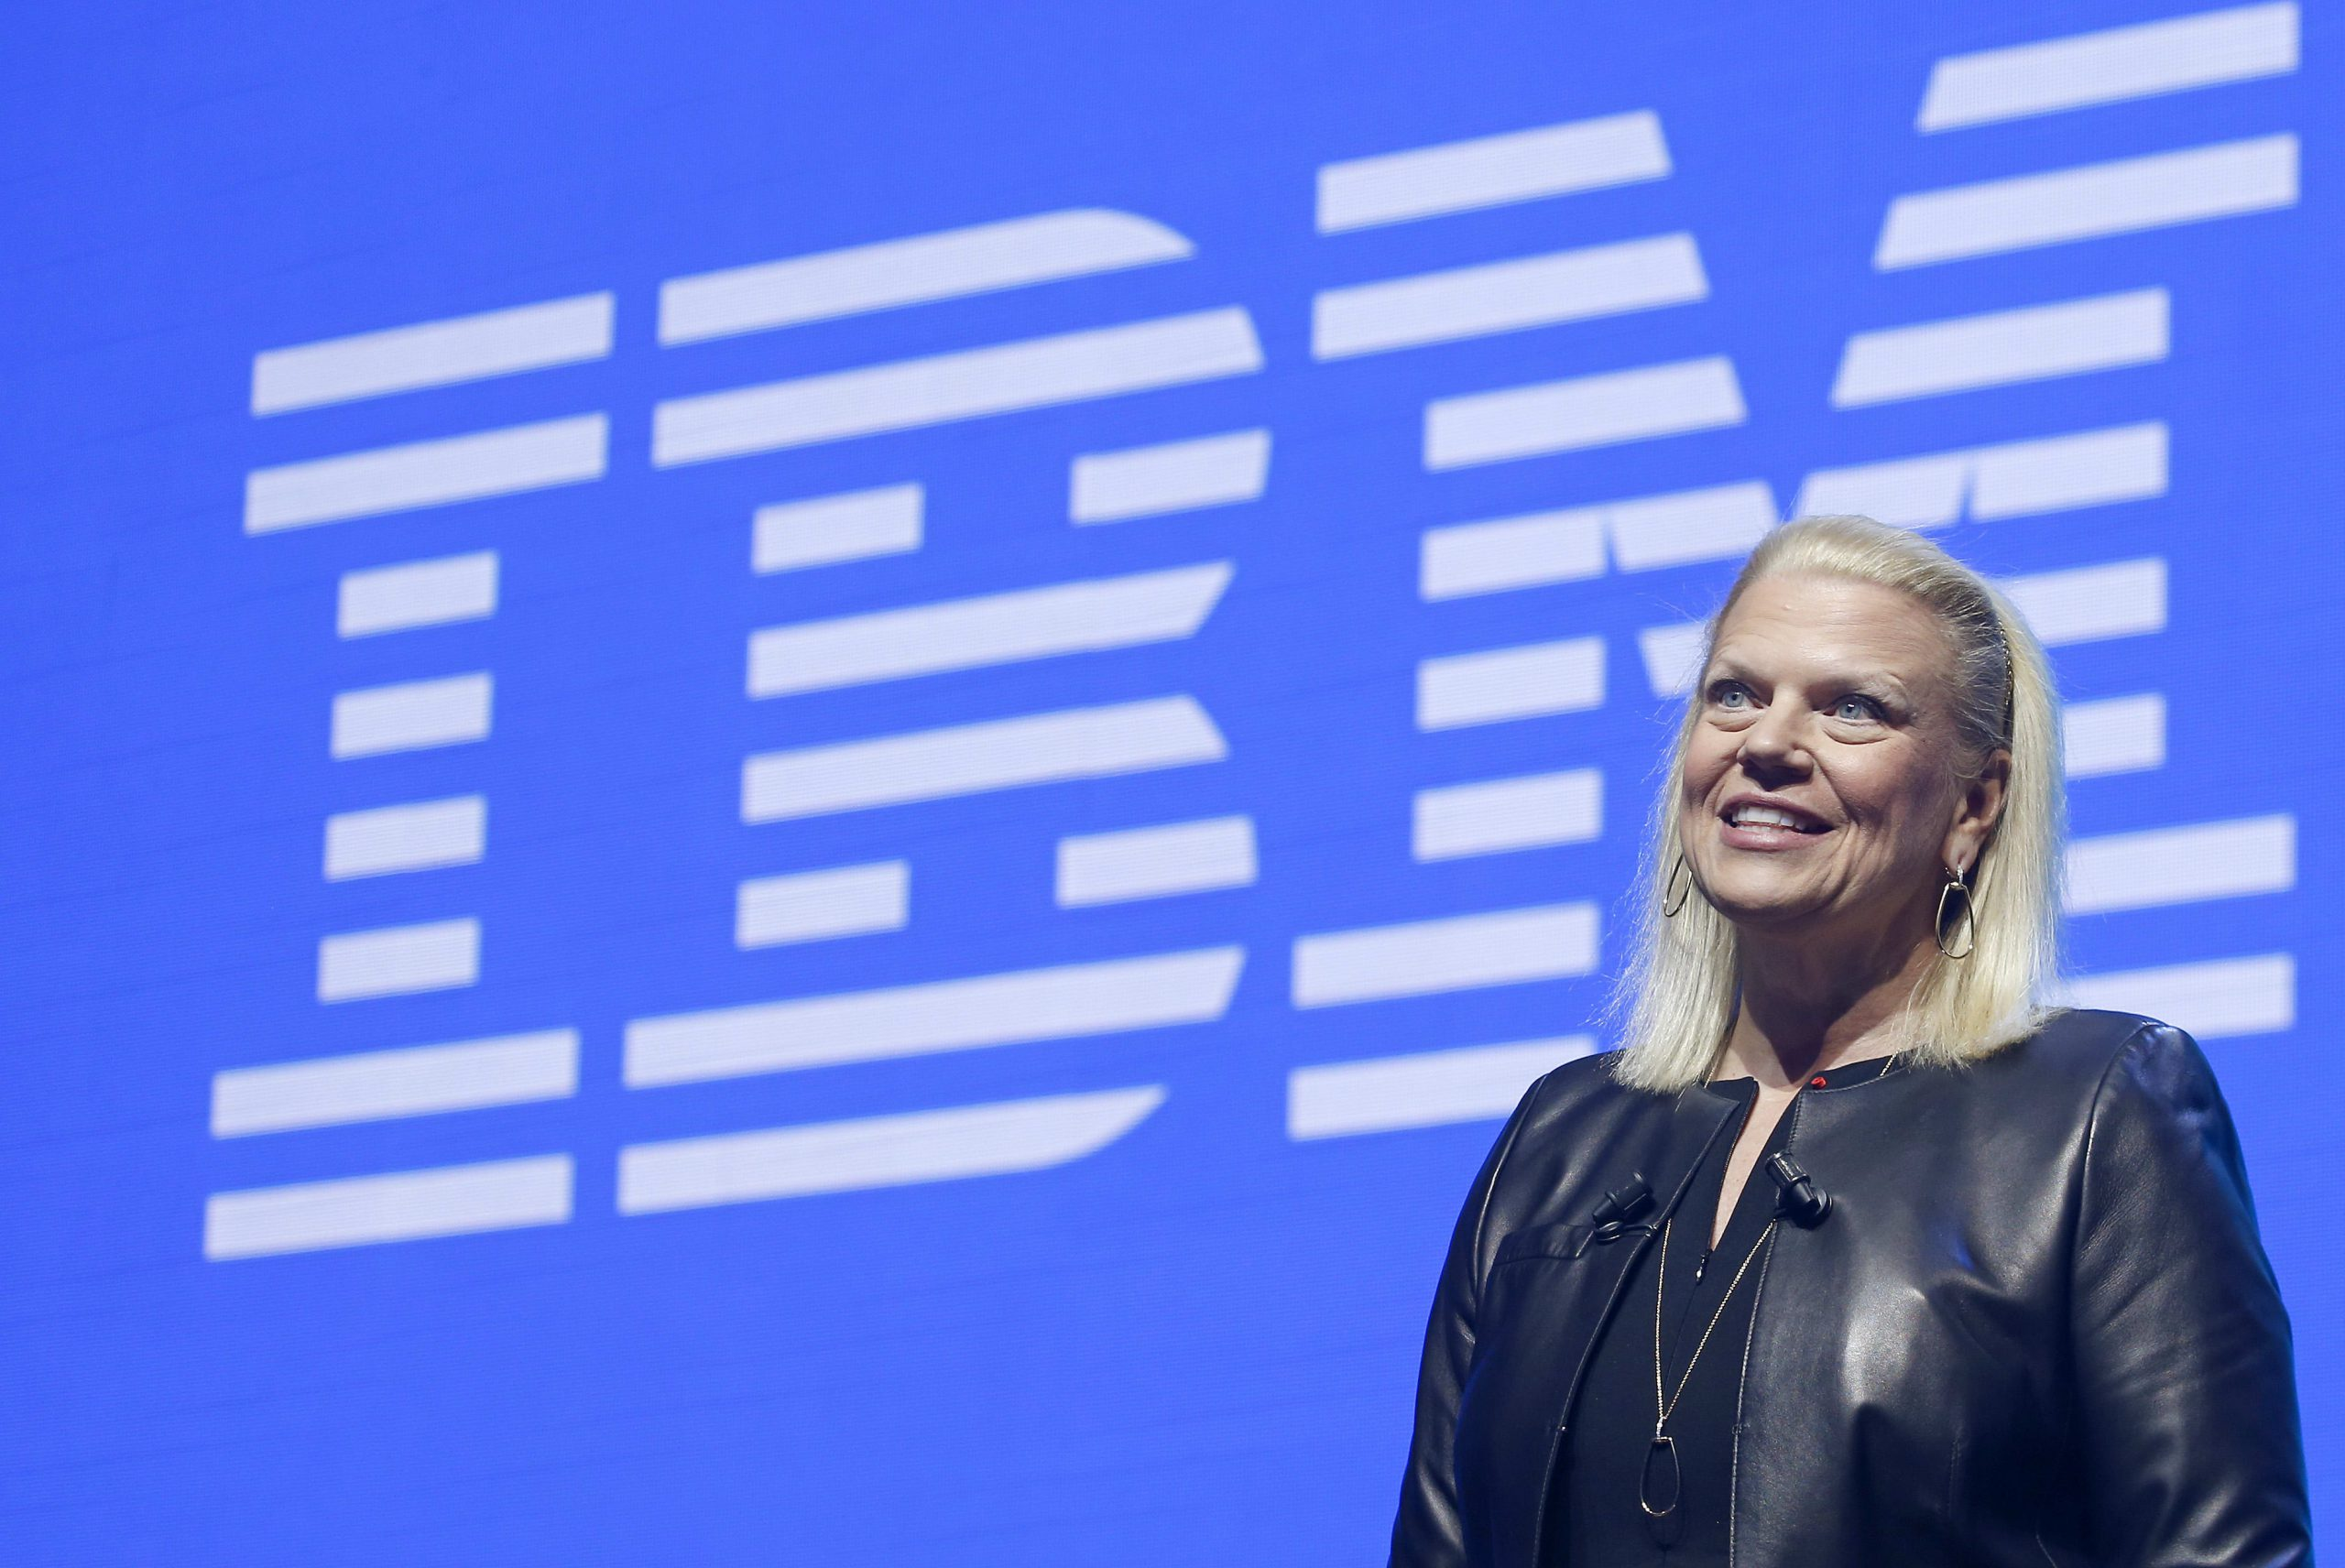 Stocks making the biggest moves midday: IBM, Salesforce, Beyond Meat, Occidental Petroleum and more